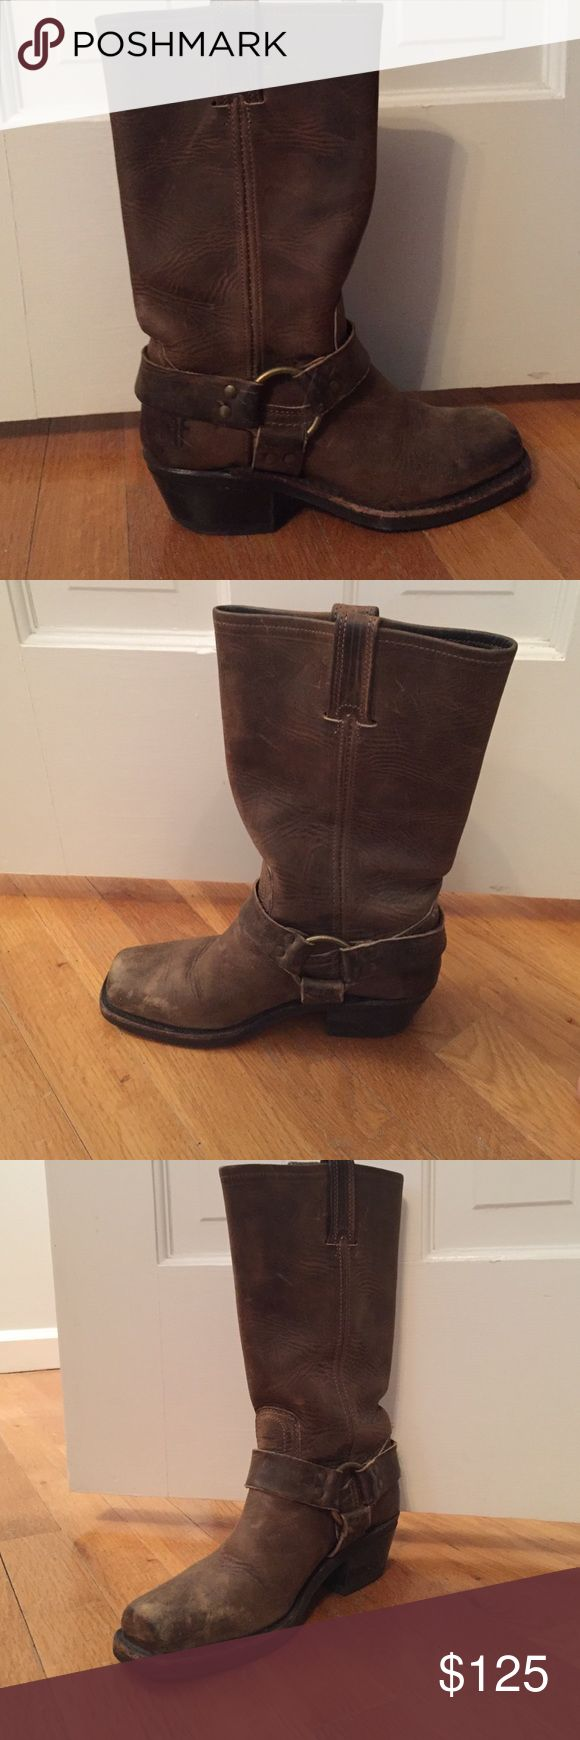 Authentic Frye Harness 12R boot in brown Frye Harness 12R boots in brown Frye Shoes Ankle Boots & Booties